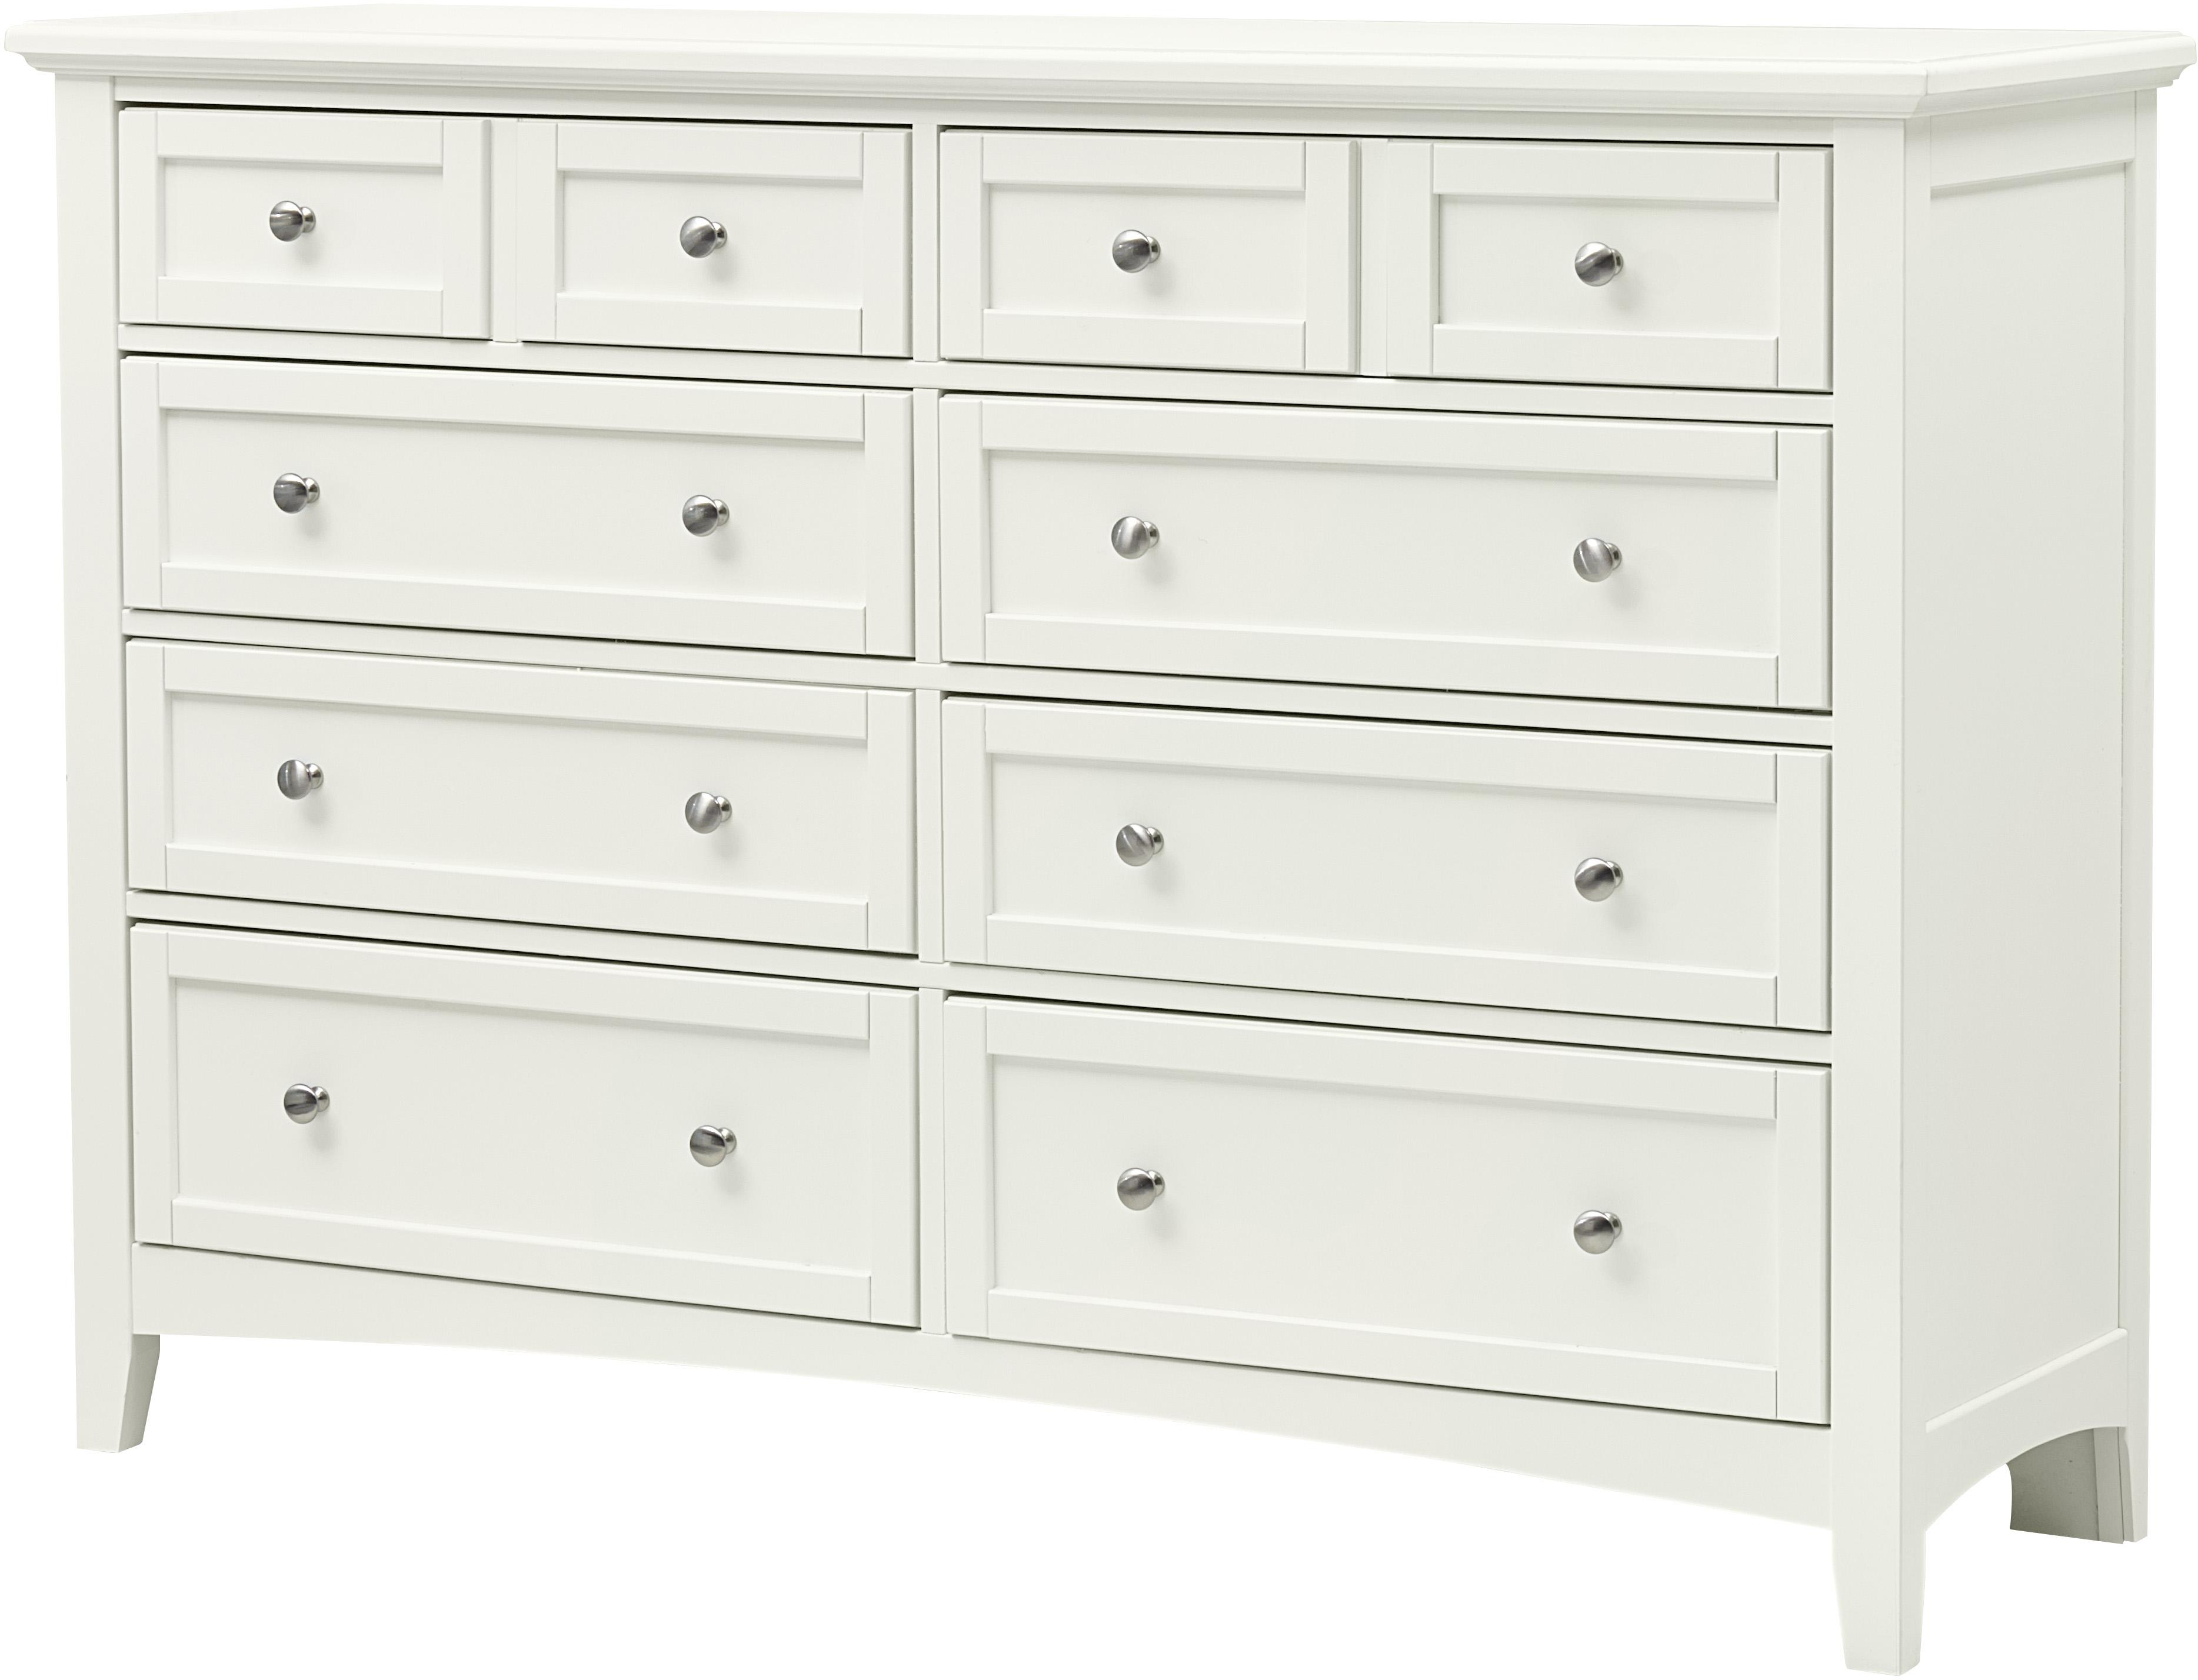 Bonanza Triple Dresser - 8 Drawers by Vaughan Bassett at Turk Furniture